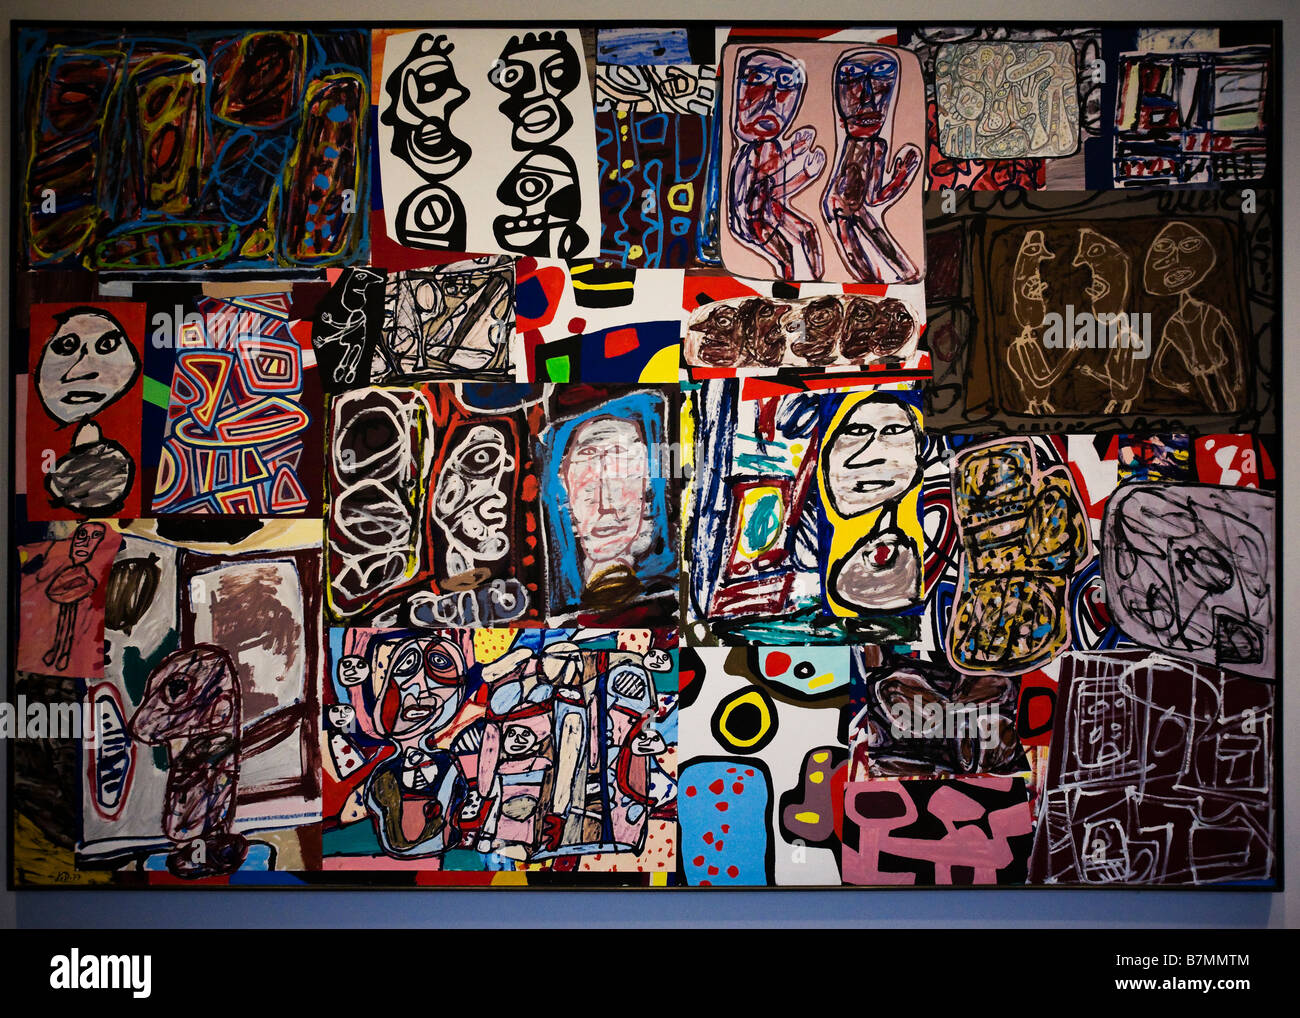 La ronde des images par Jean Dubuffet, 1977 Photo Stock